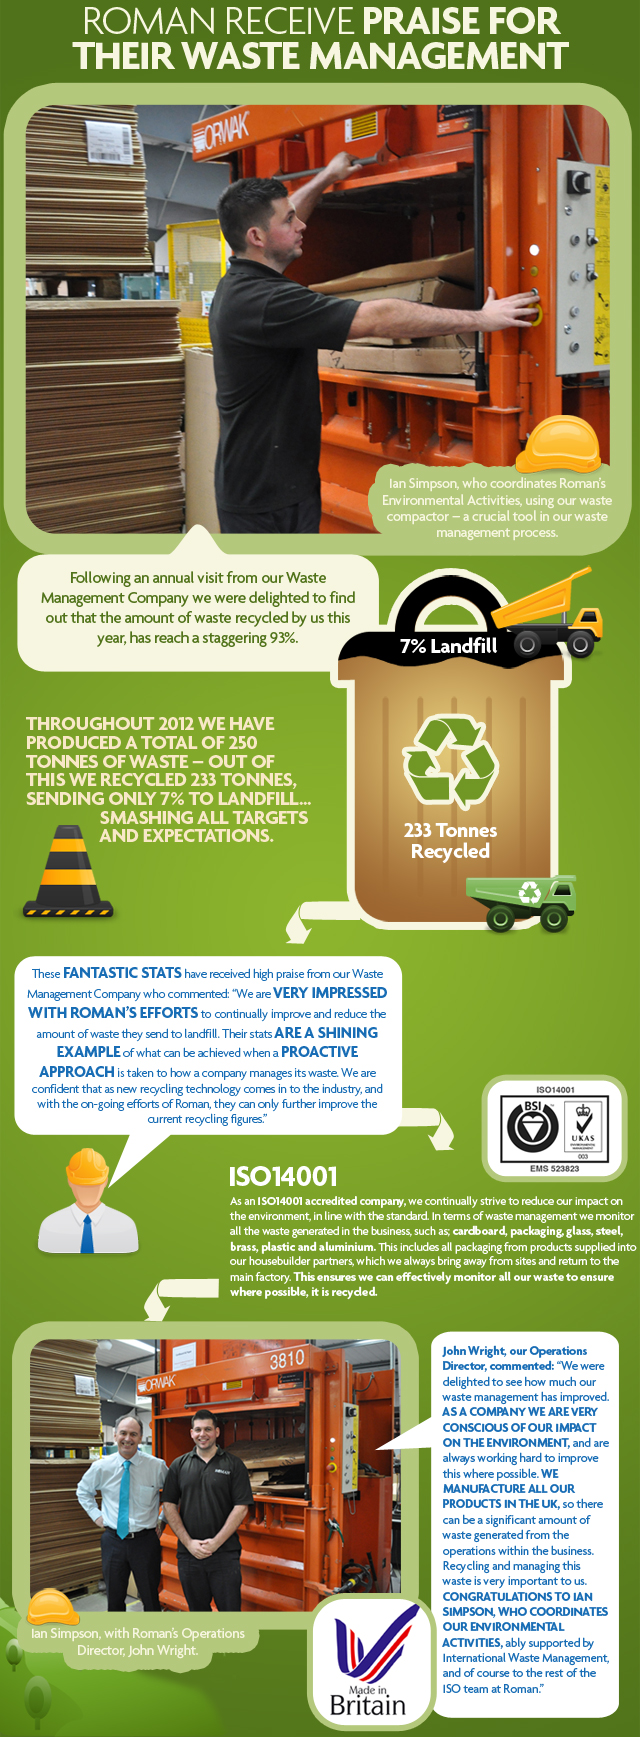 Roman Receive Praise for their Waste Management Info-graph